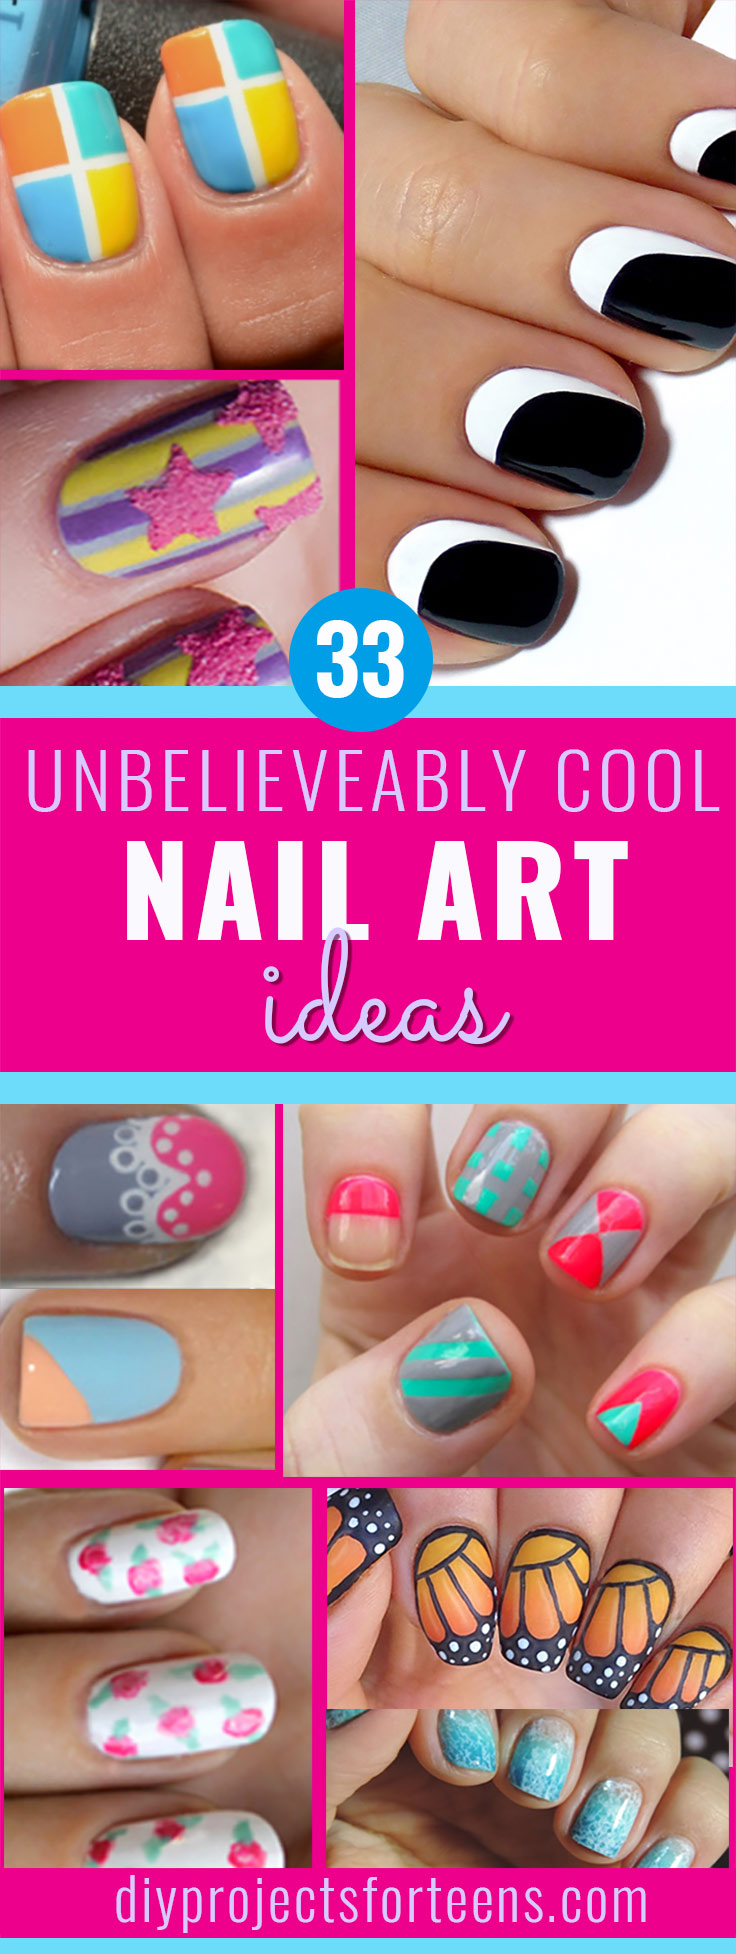 Cool Nail Art Ideas - Cool Nail Tutorials for Teens and Adults - Fun for Teens and Tweens- Nail Polish Design Ideas and Art Tutorial - Easy DIY Nail Designs - Step By Step Tutorials and Instructions for Manicures at Home